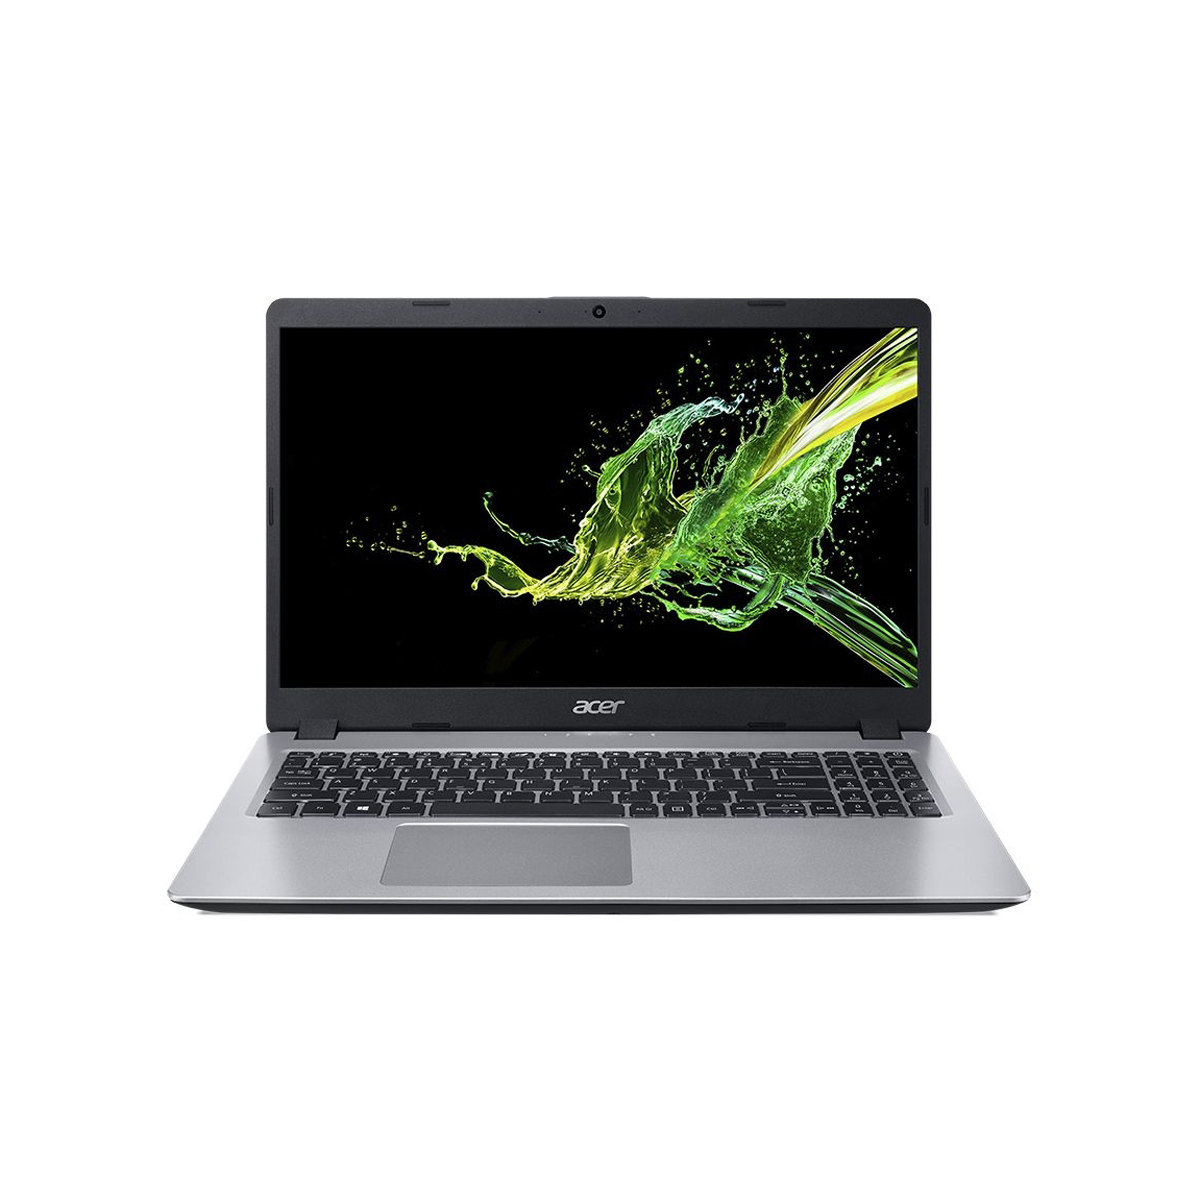 Notebook Acer A515 Core I5 8265u Memoria 8gb Ddr4 Ssd 240gb Tela 15.6' Led Hd Sistema Windows 10 Home